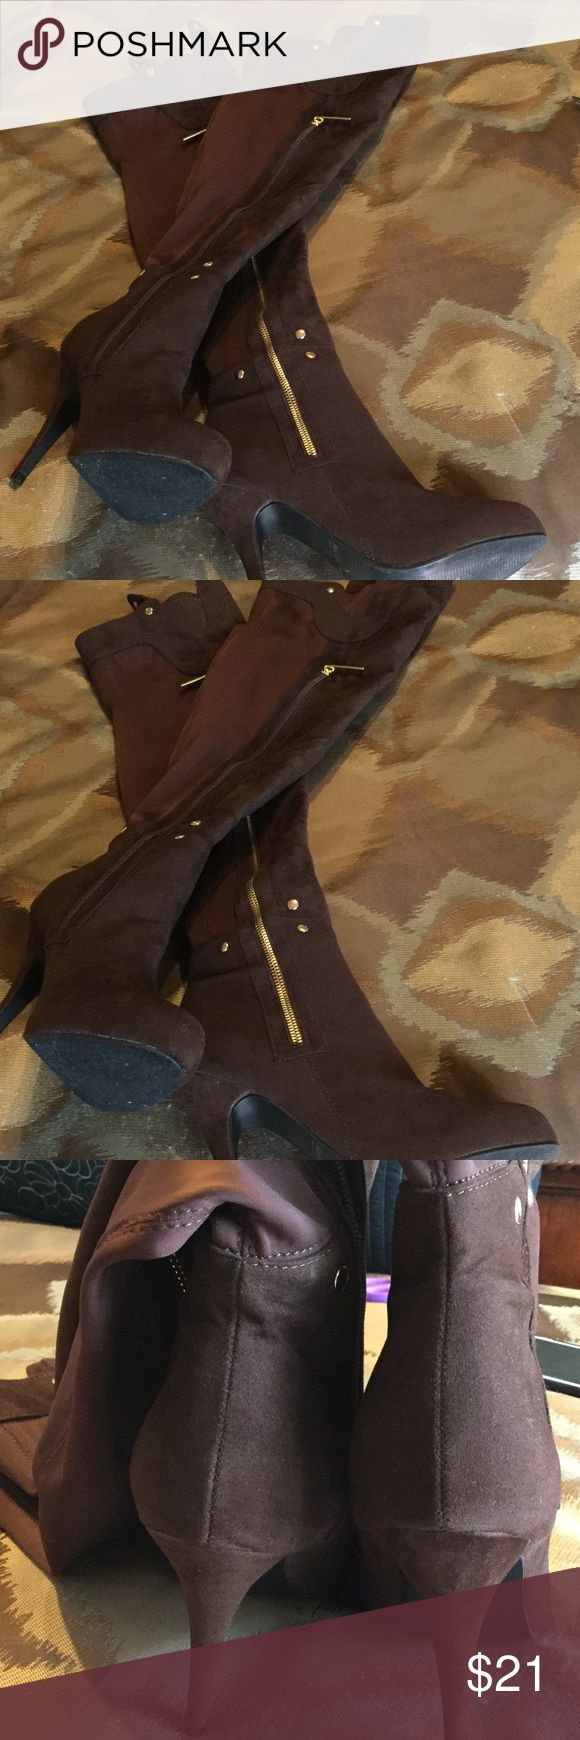 """CHOCOLATE BROWN THIGH HIGH BOOTS w GOLD ACCENTS! Chocolate brown with shines gold zippers and stud accents.  Zippers on both sides of the boots.  All man made materials.  A combination of suede look and nylon look.  4.5"""" heel.  In very good condition; almost like new.  Very well made boots that will garner attention. Styluxe Shoes"""